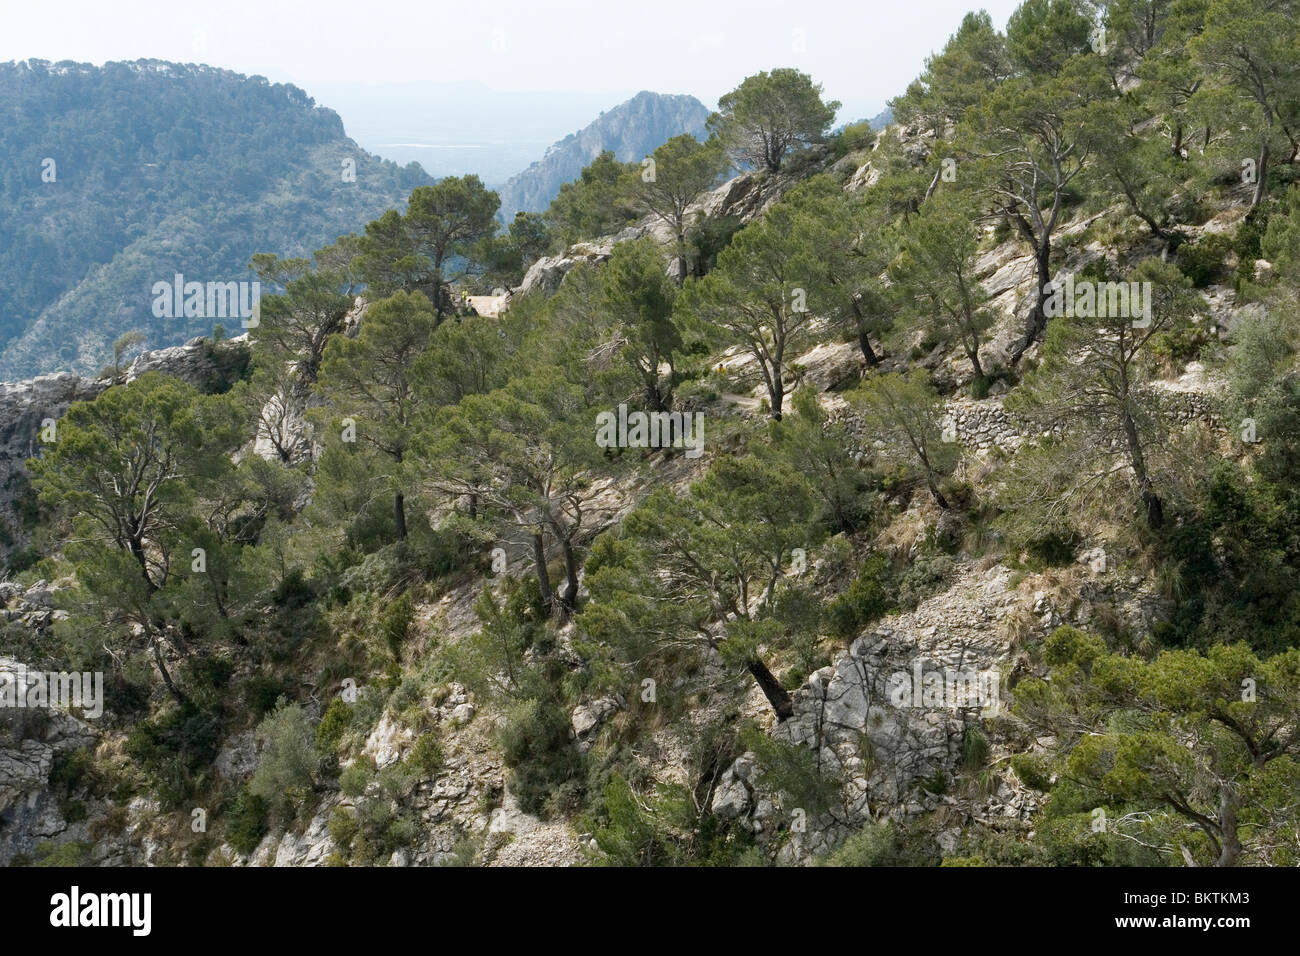 A spectacular forest of Carob trees on a hillside (Majorca - Spain). Spectaculaire forêt de caroubiers à - Stock Image